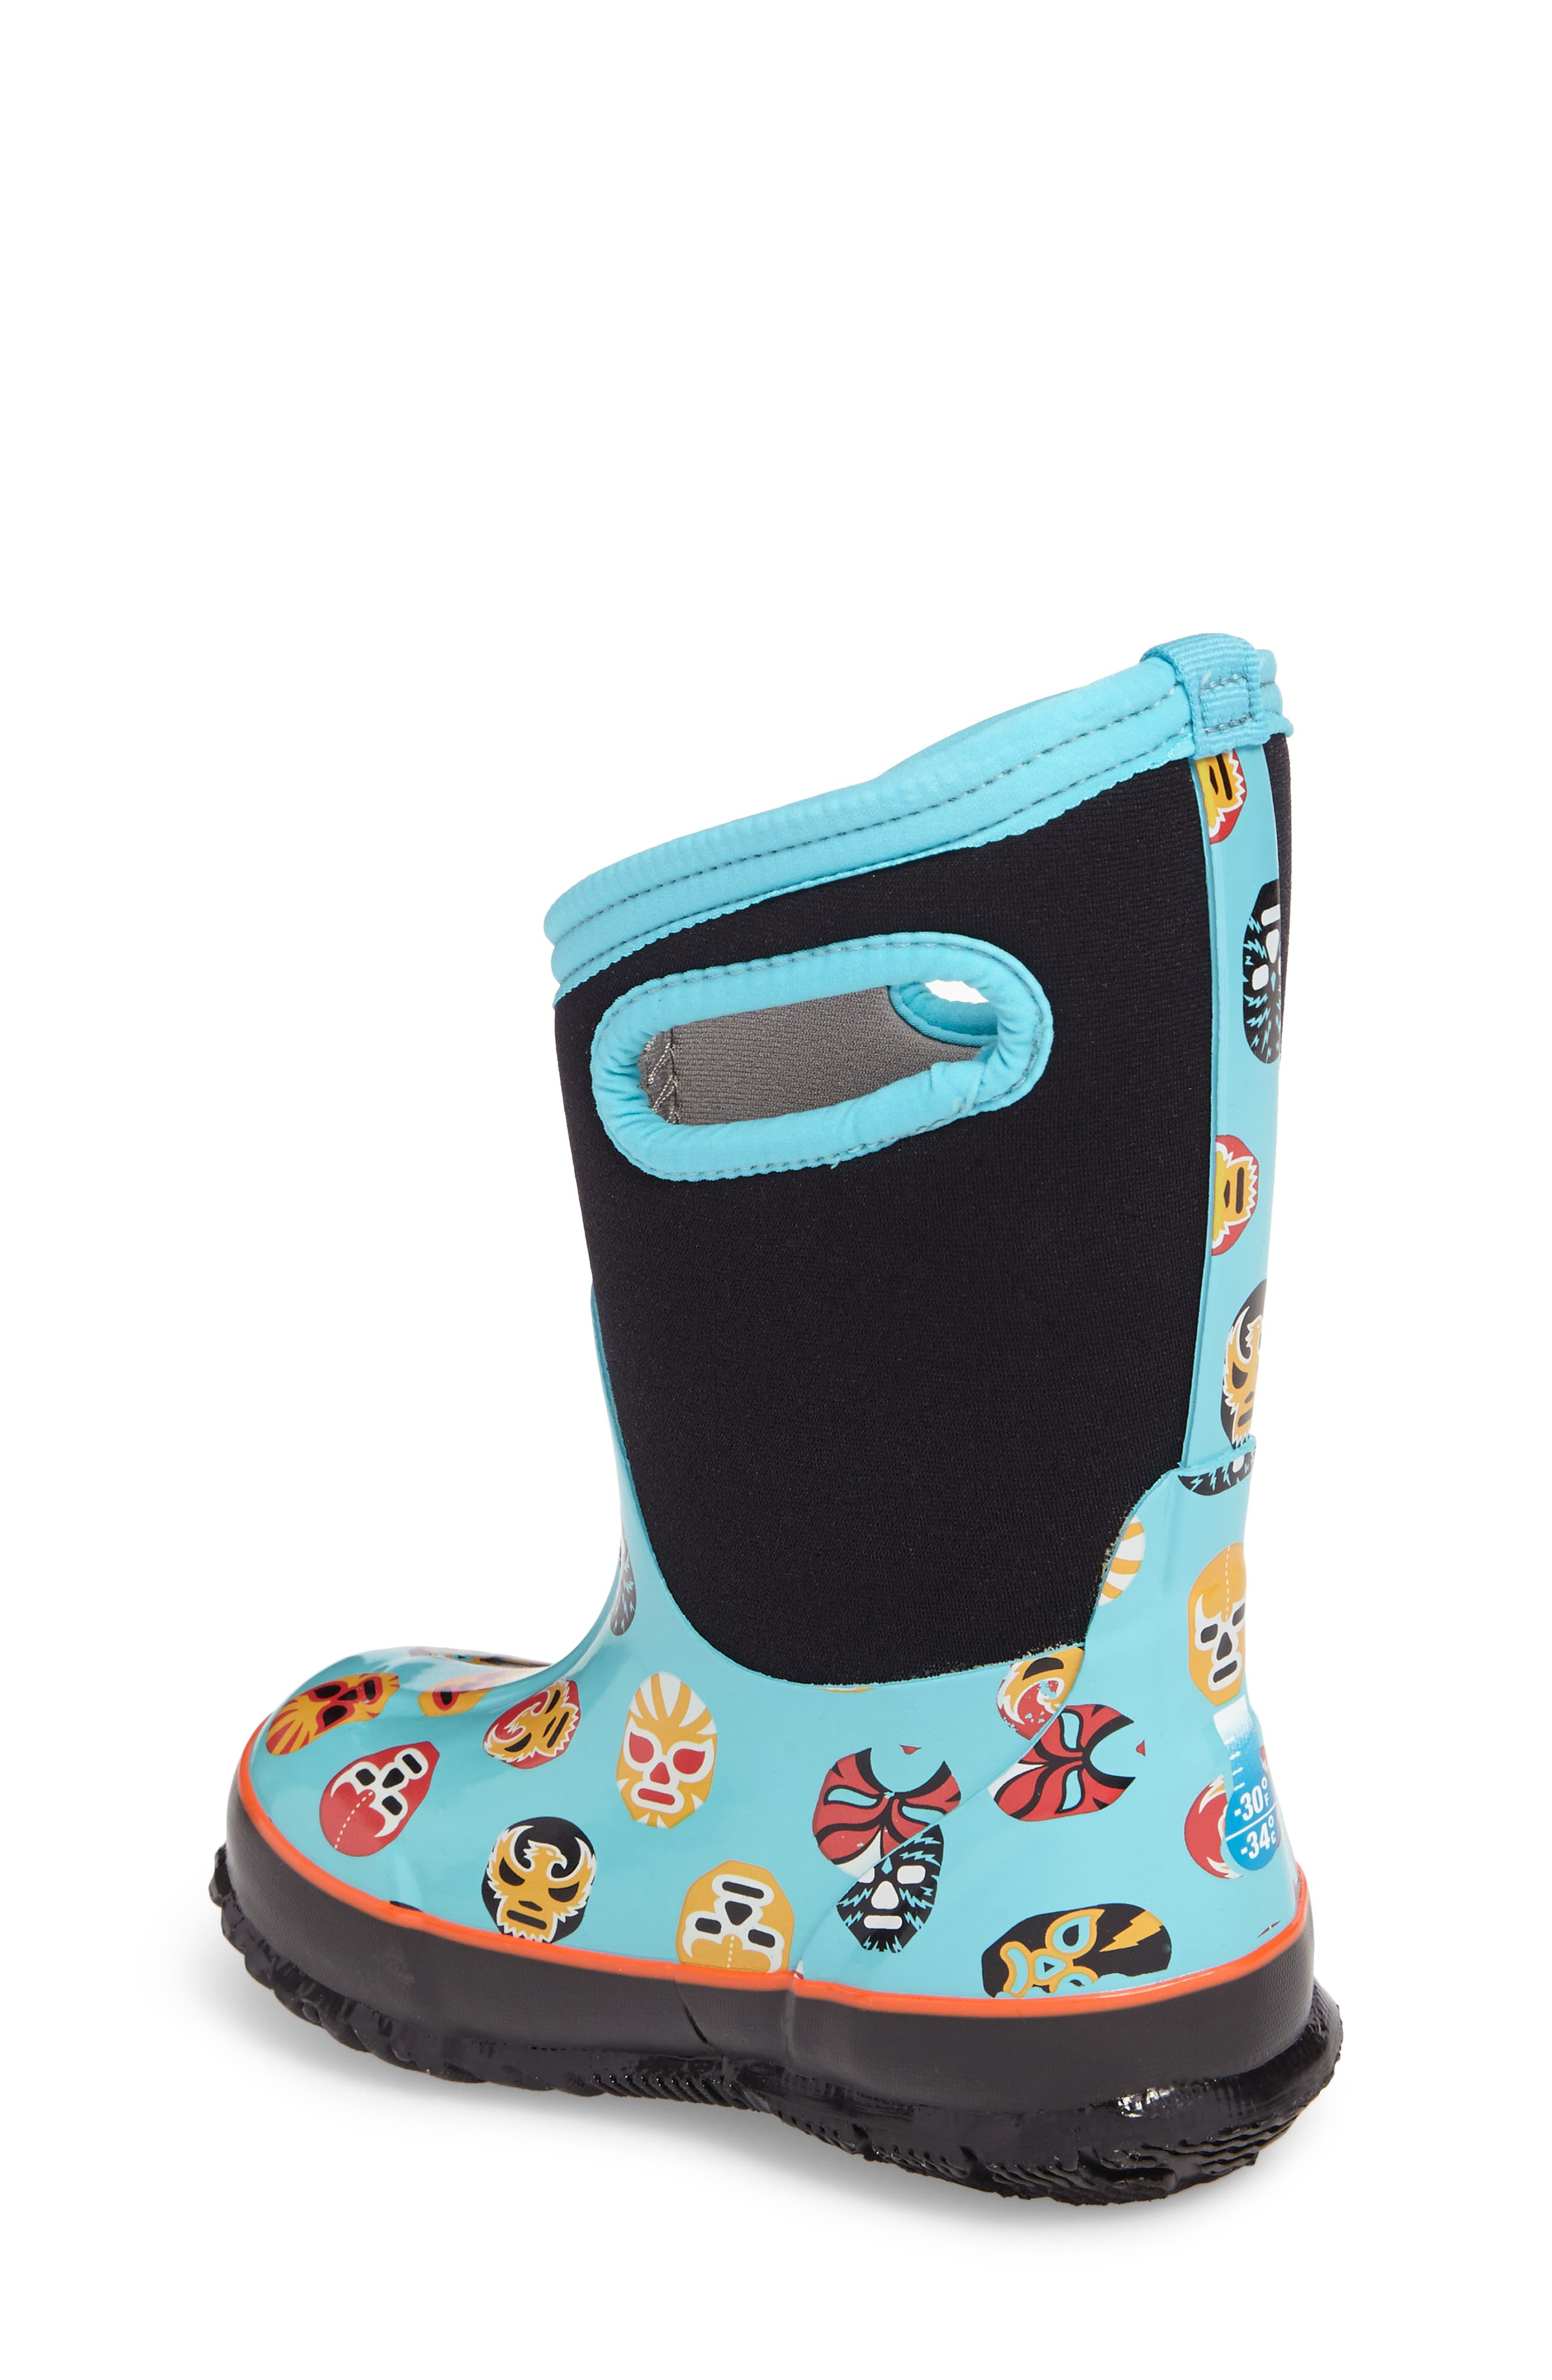 Classic Mask Insulated Waterproof Boot,                             Alternate thumbnail 2, color,                             409